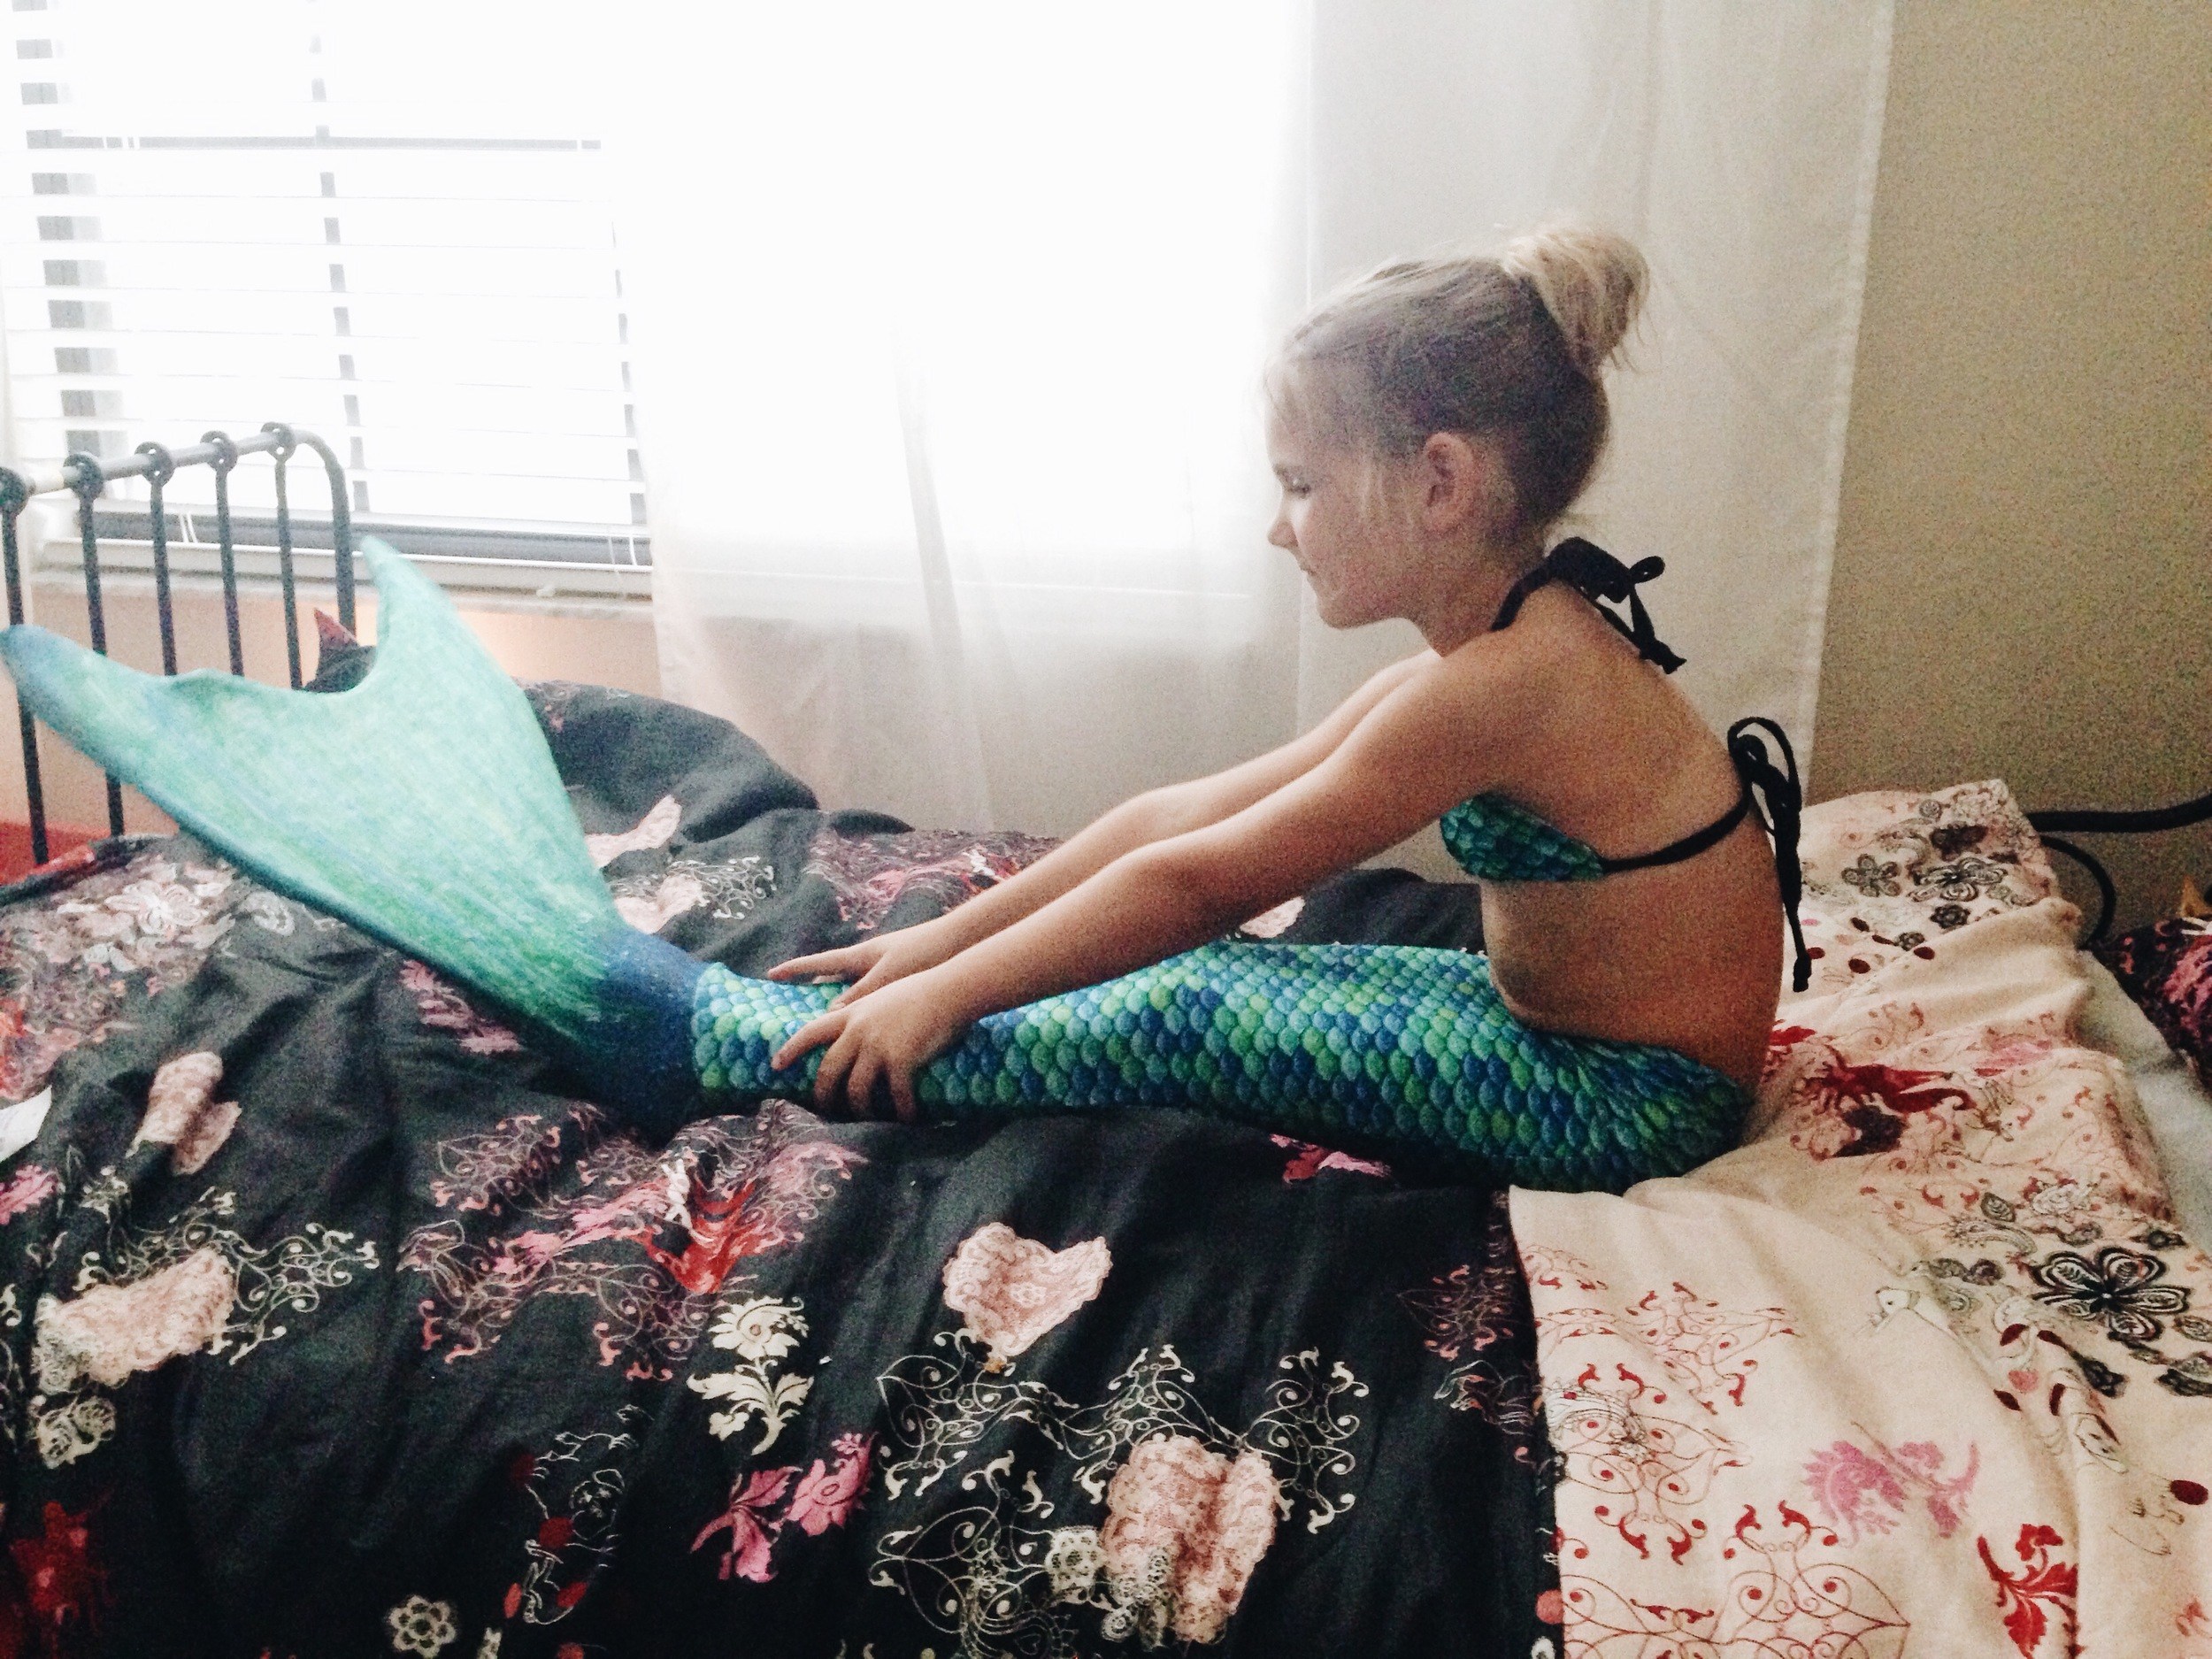 FinFun Mermaid Tail, photo by Stacey Woods